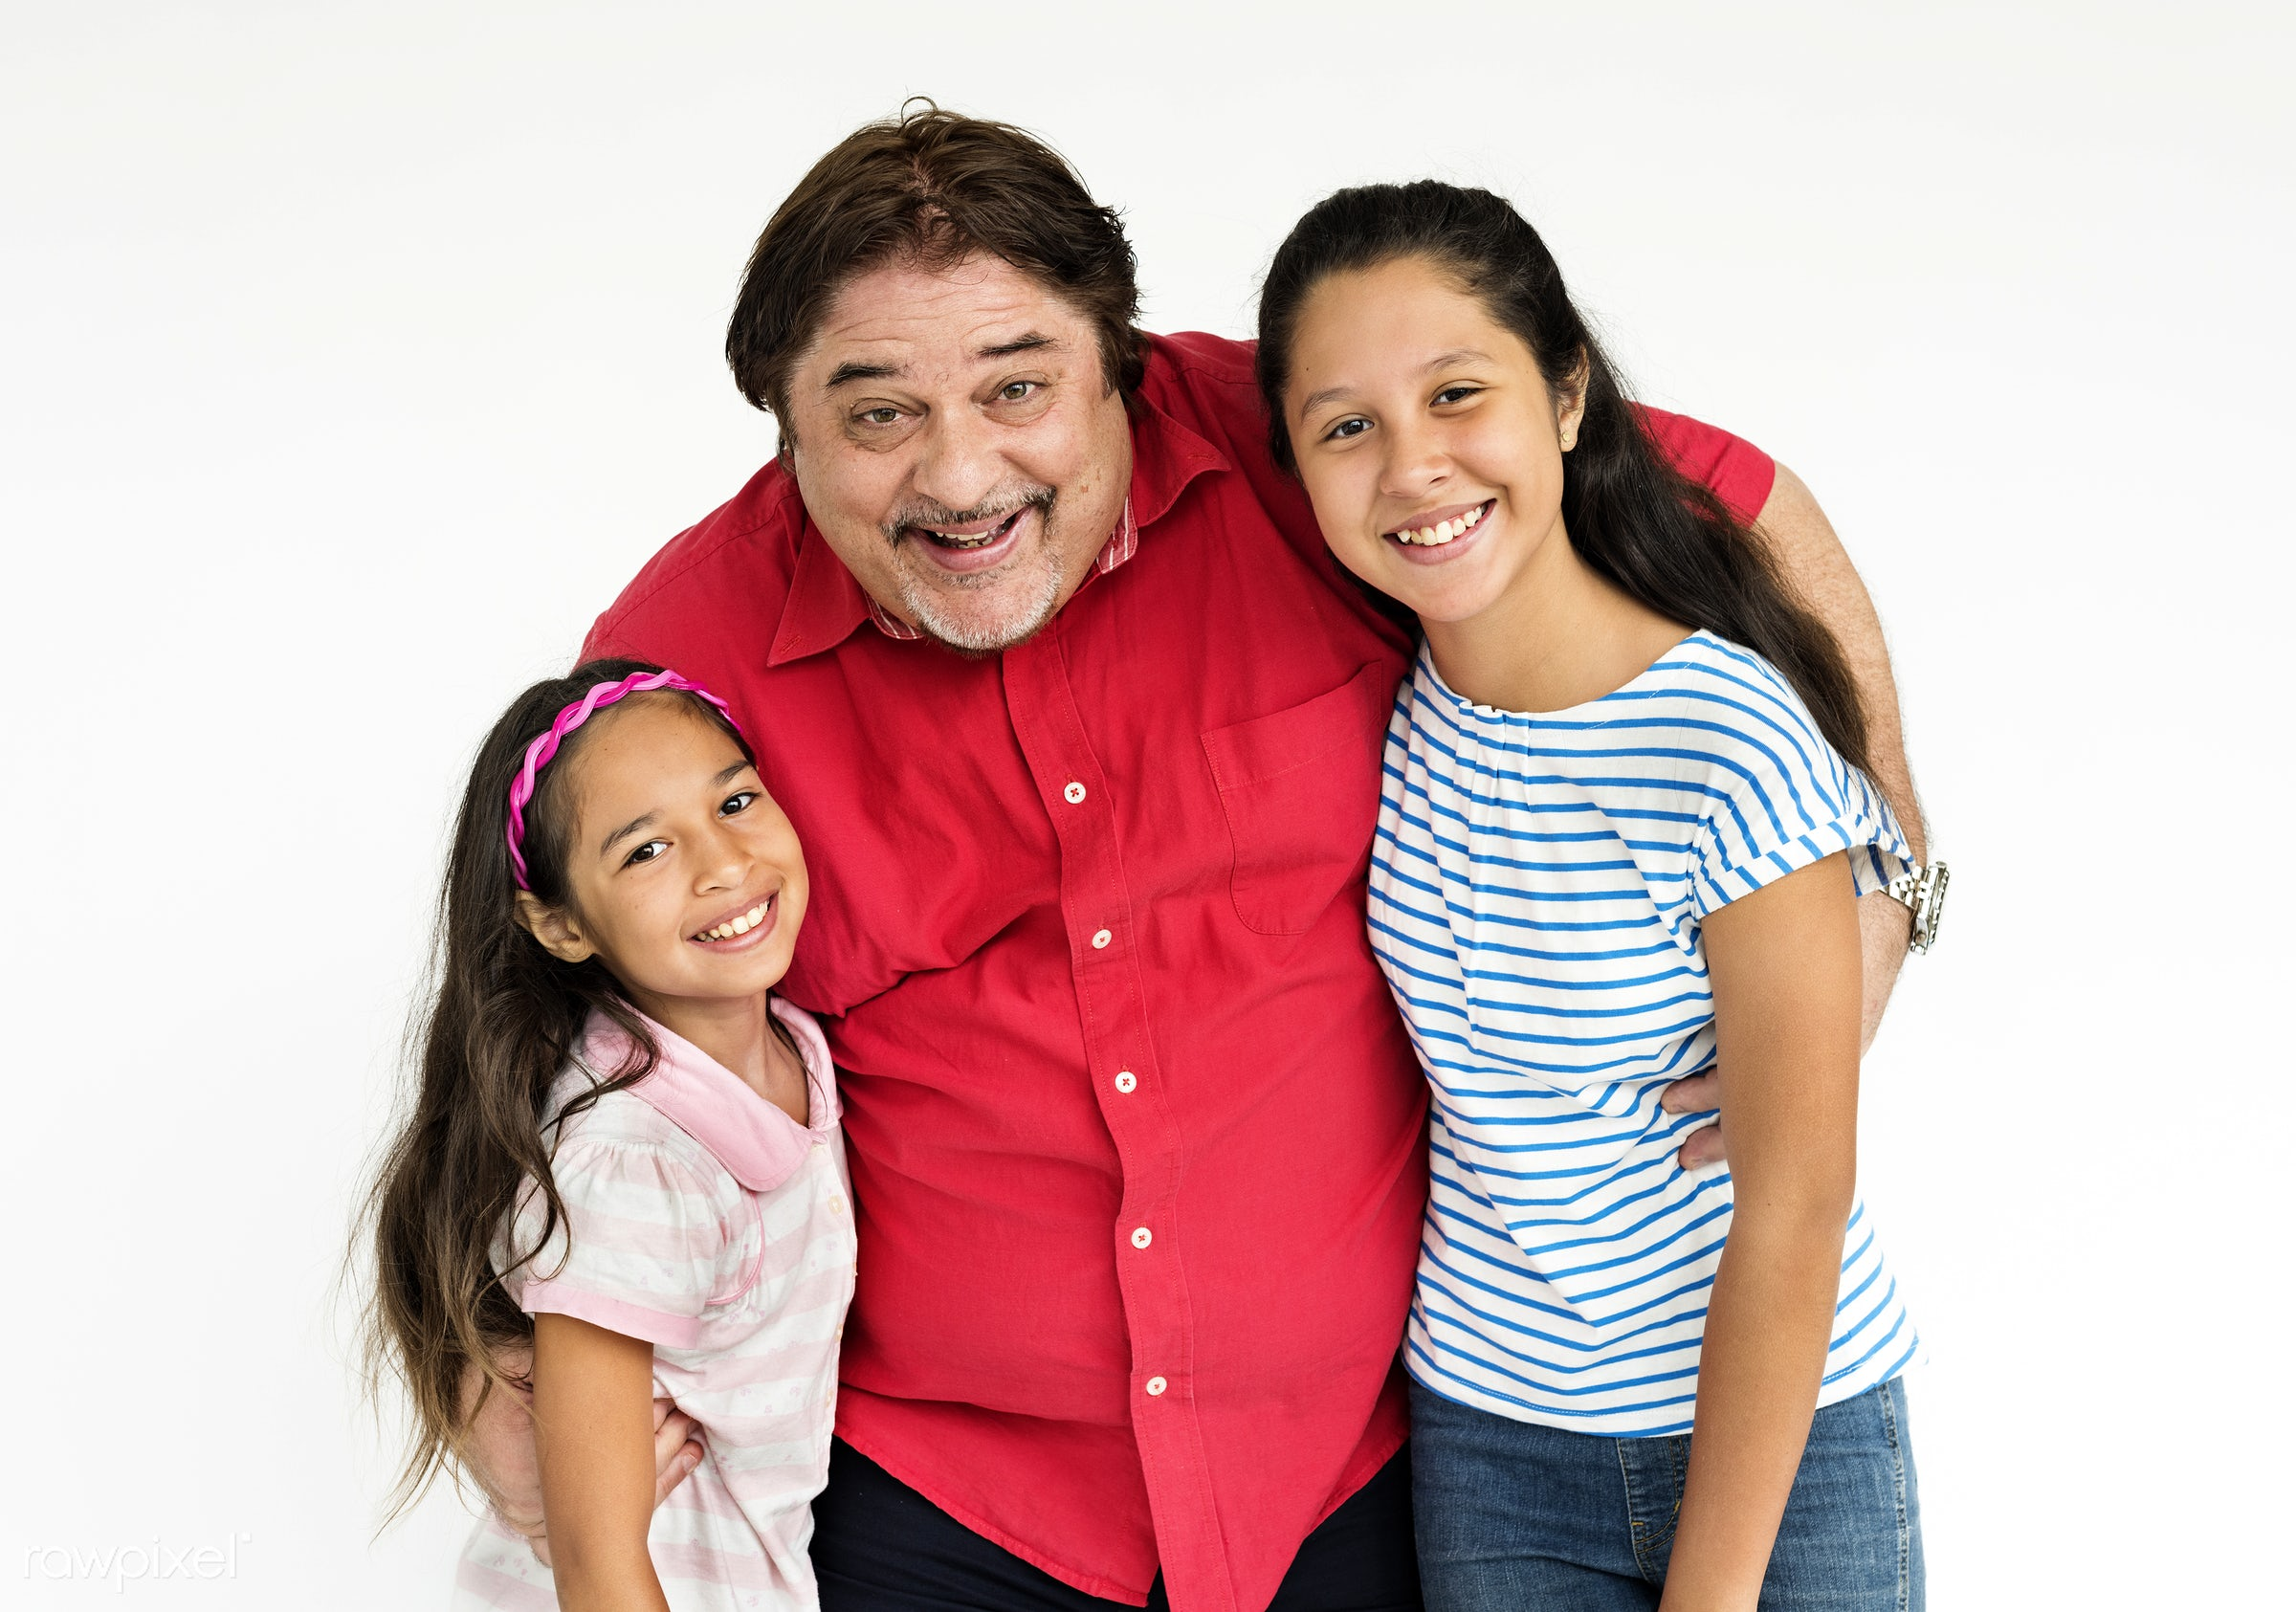 expression, studio, person, hug, isolated on white, husband, people, together, father, kid, caucasian, sister, love, young...